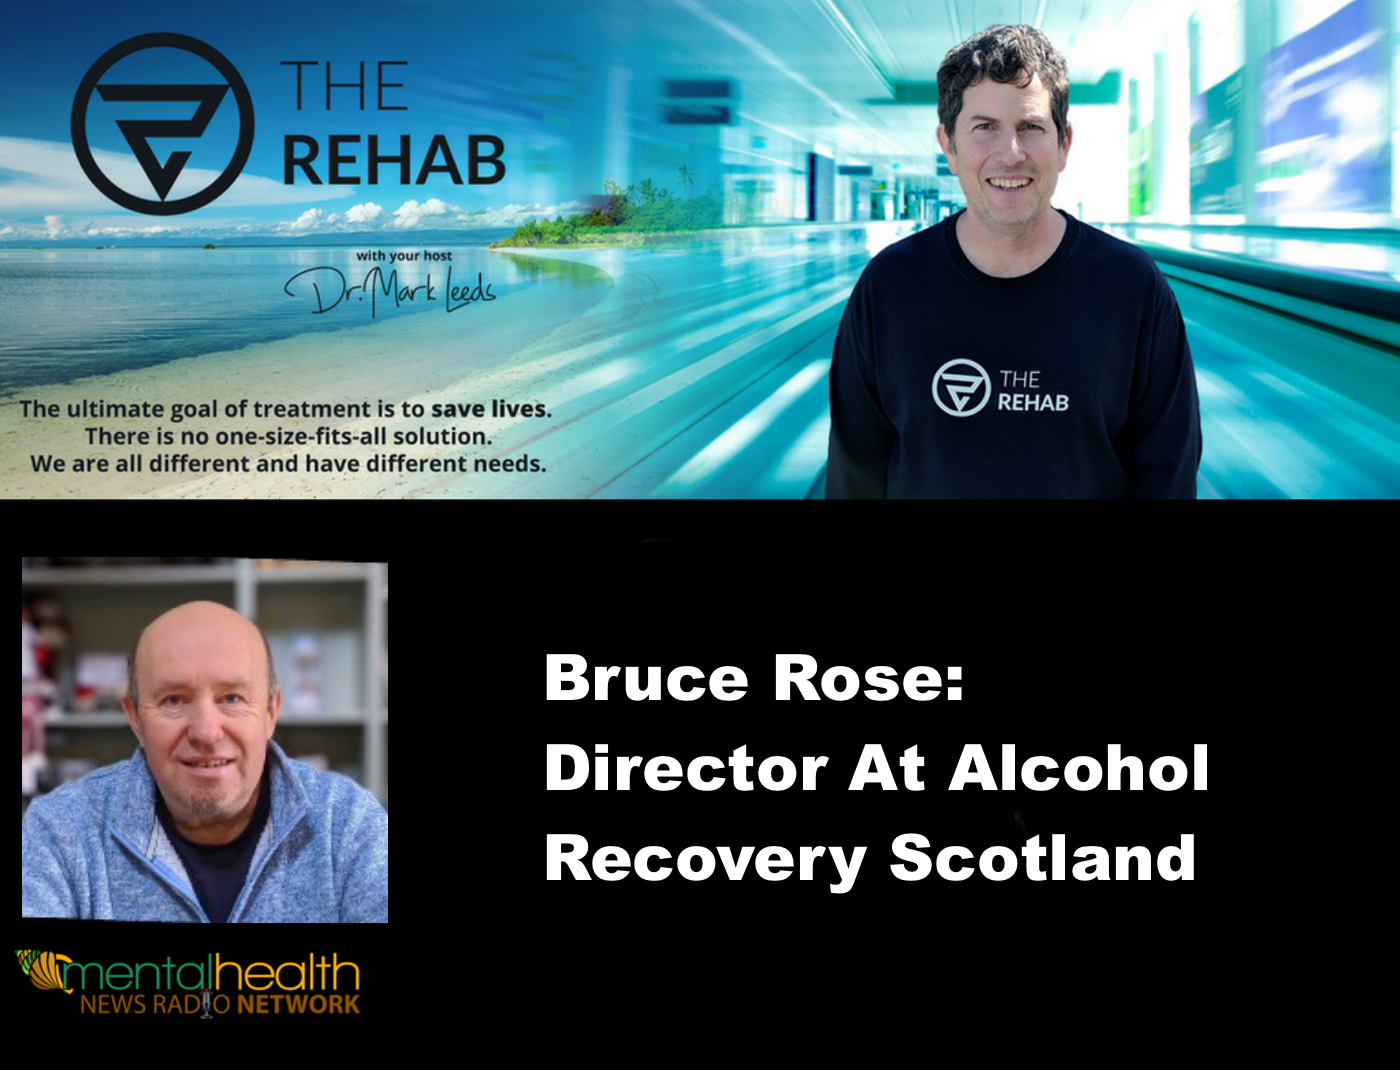 Bruce Rose: Director at Alcohol Recovery Scotland